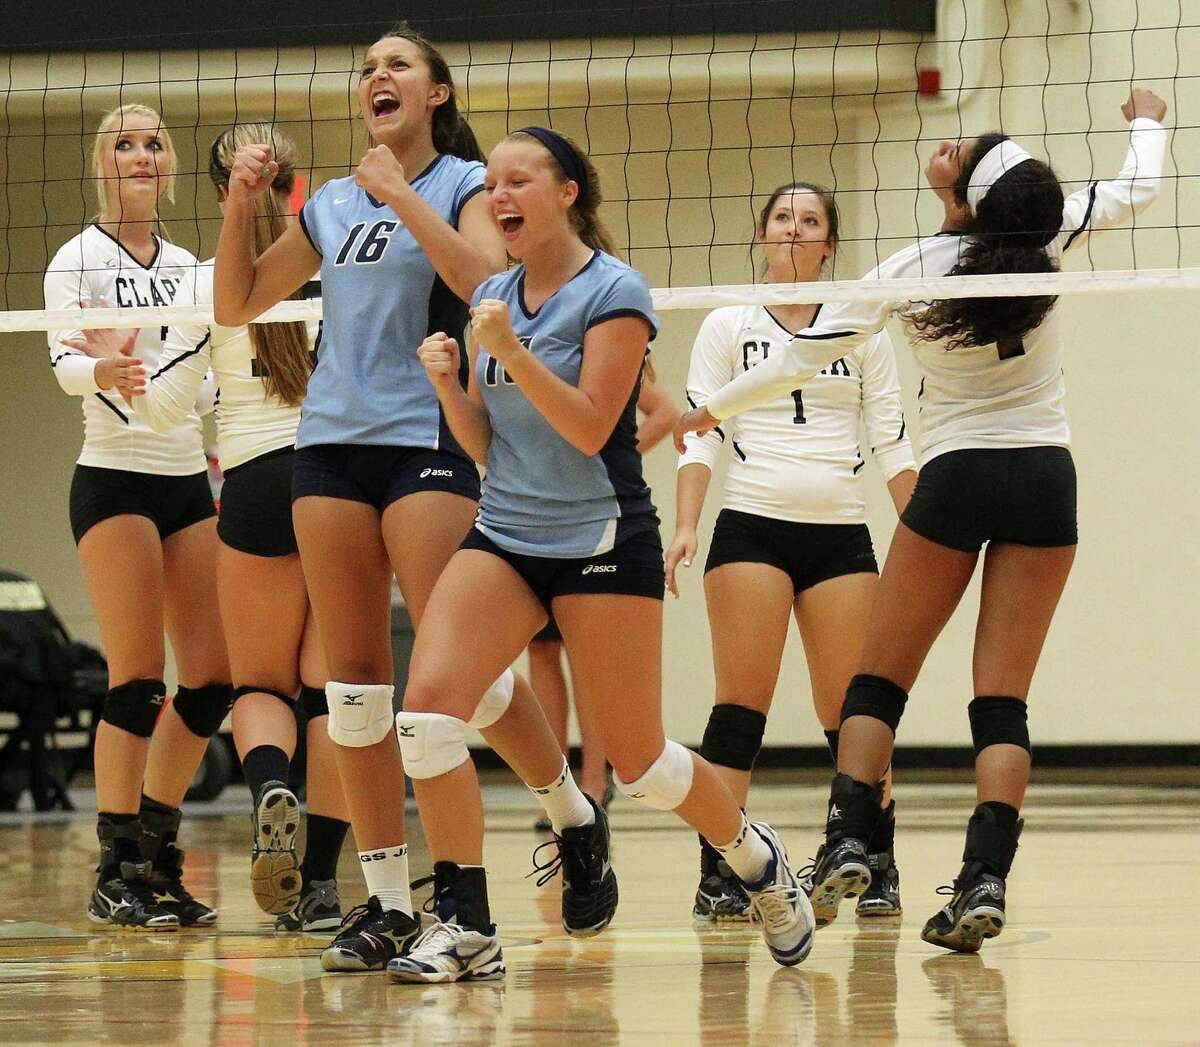 Johnson's Lauren Bault (16) and Meghan Parker (10) react after winning a point against Clark in volleyball at Littleton Gym on Tuesday, Aug. 13, 2013.